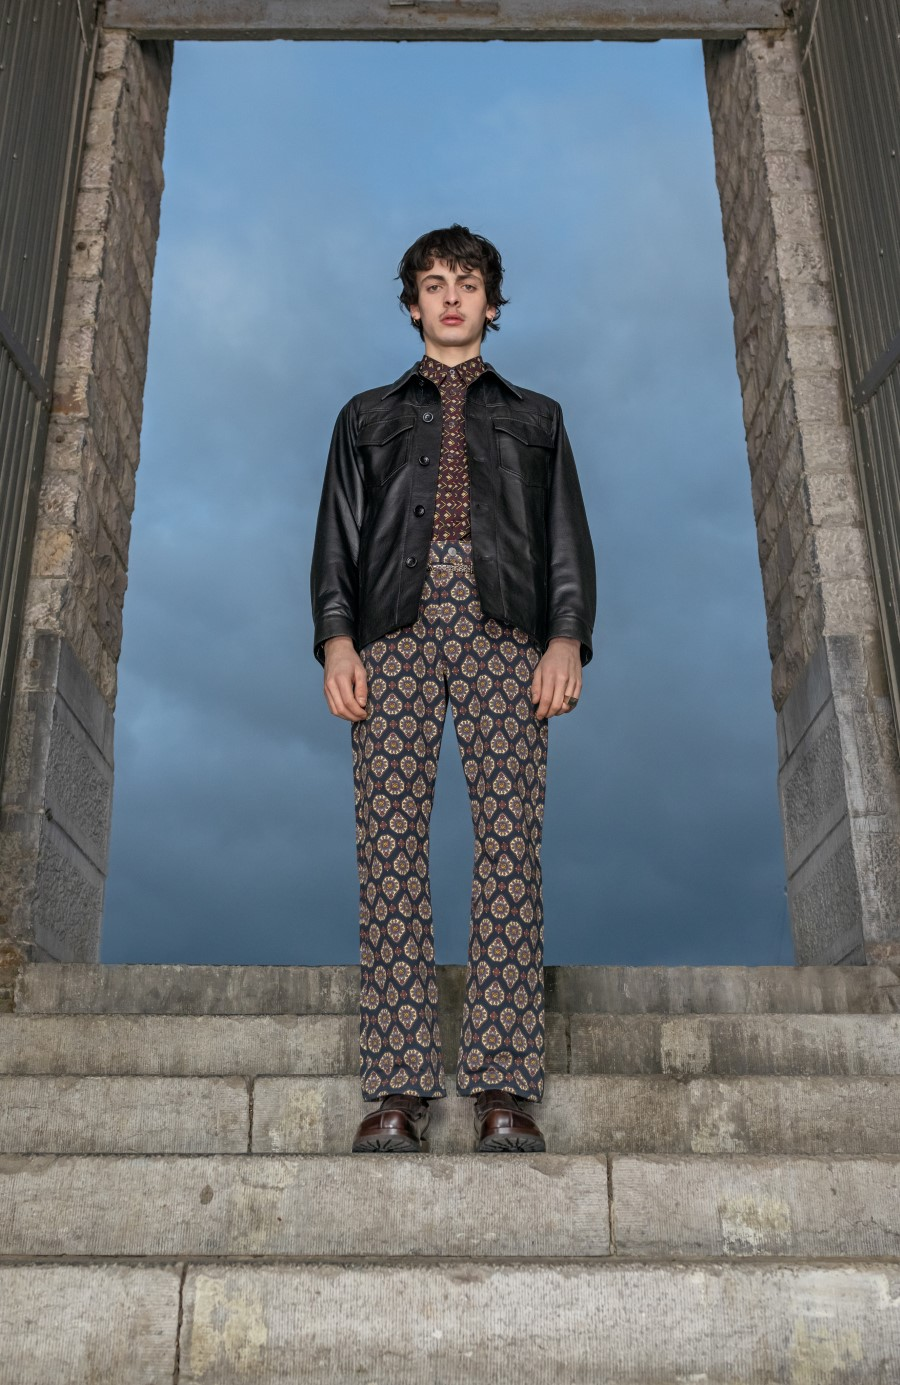 Dries Van Noten Fall Winter 2021 - Paris Fashion Week Men's